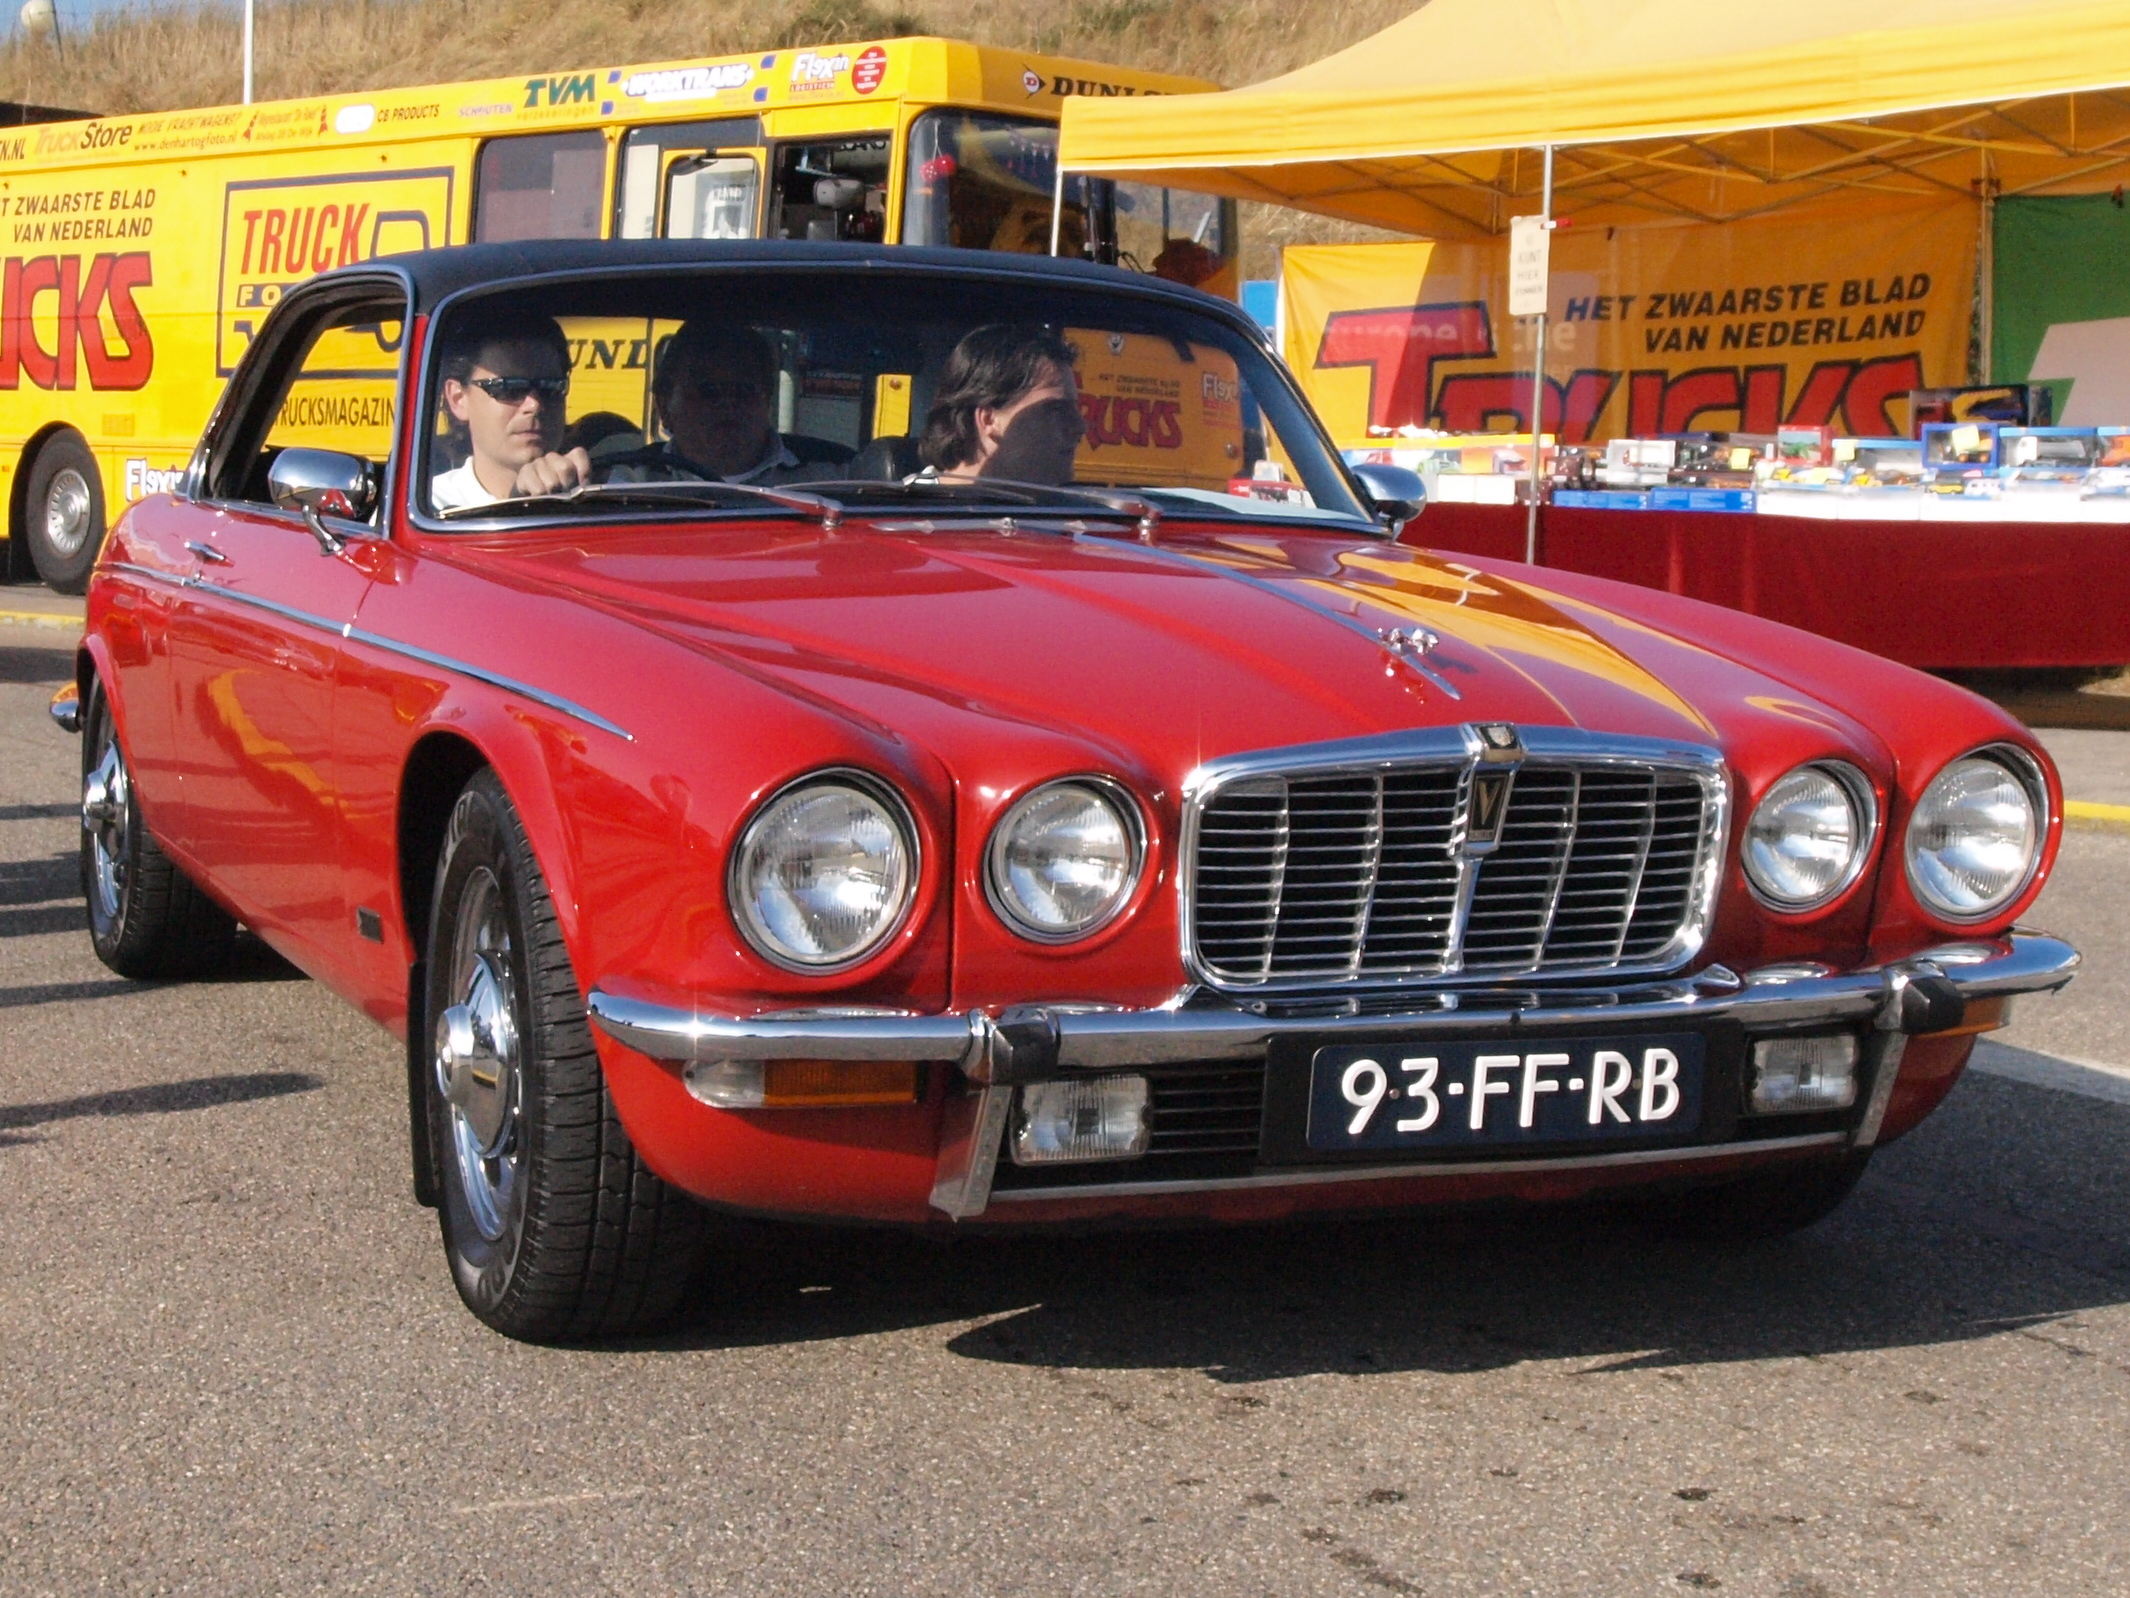 File:Jaguar XJ12 Coupe PI dutch licence registration 93-FF